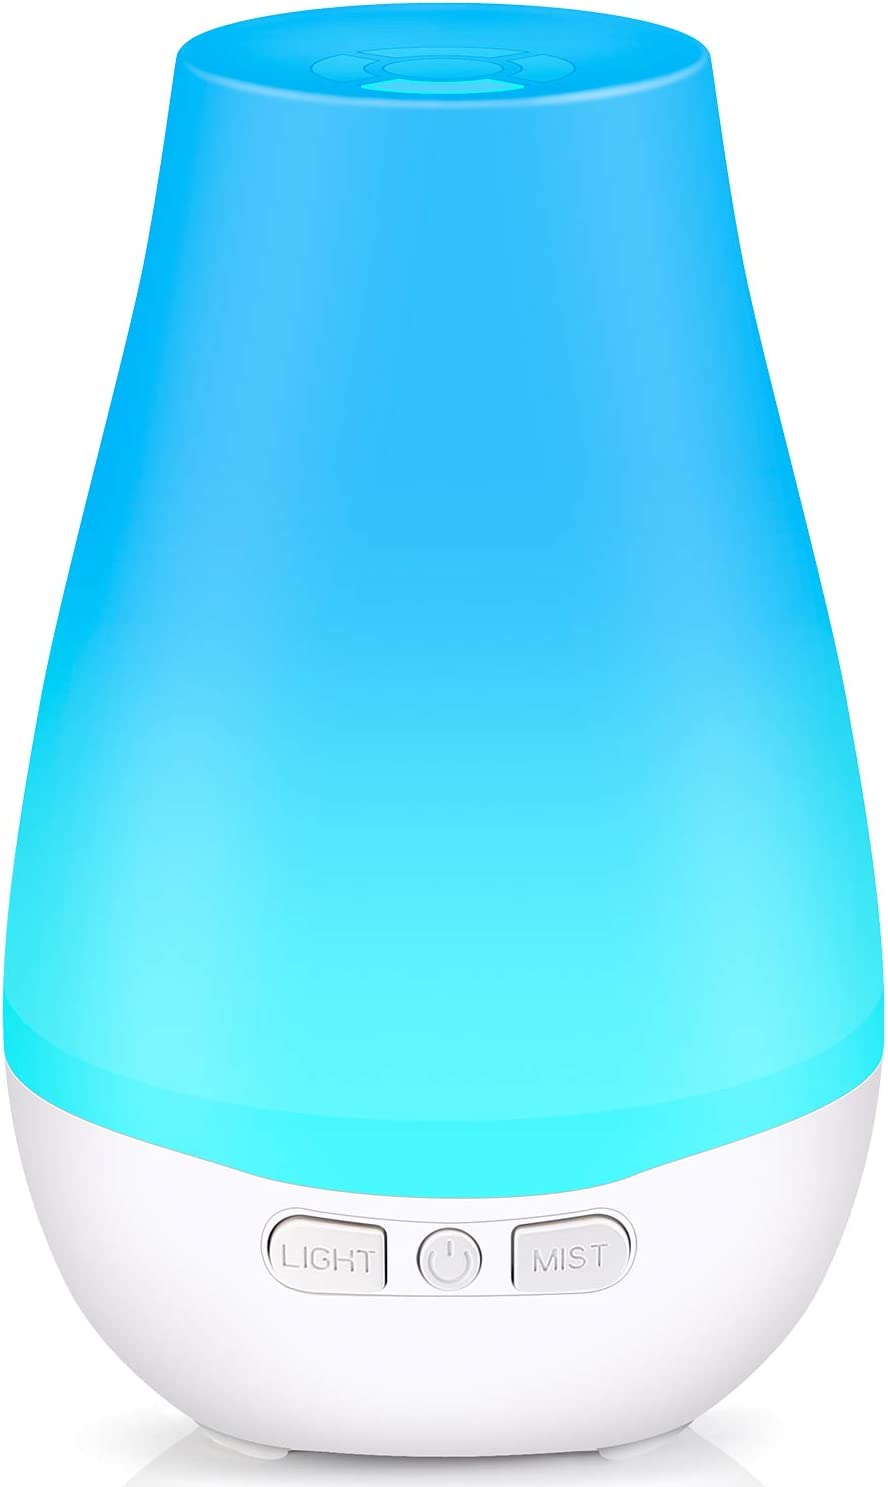 Tenswall Essential Oil Diffuser for Aromatherapy 180 ml Premium Essential Oil Cool Mist Humidifier with 7 Color LED Lights, Waterless Auto Shut off